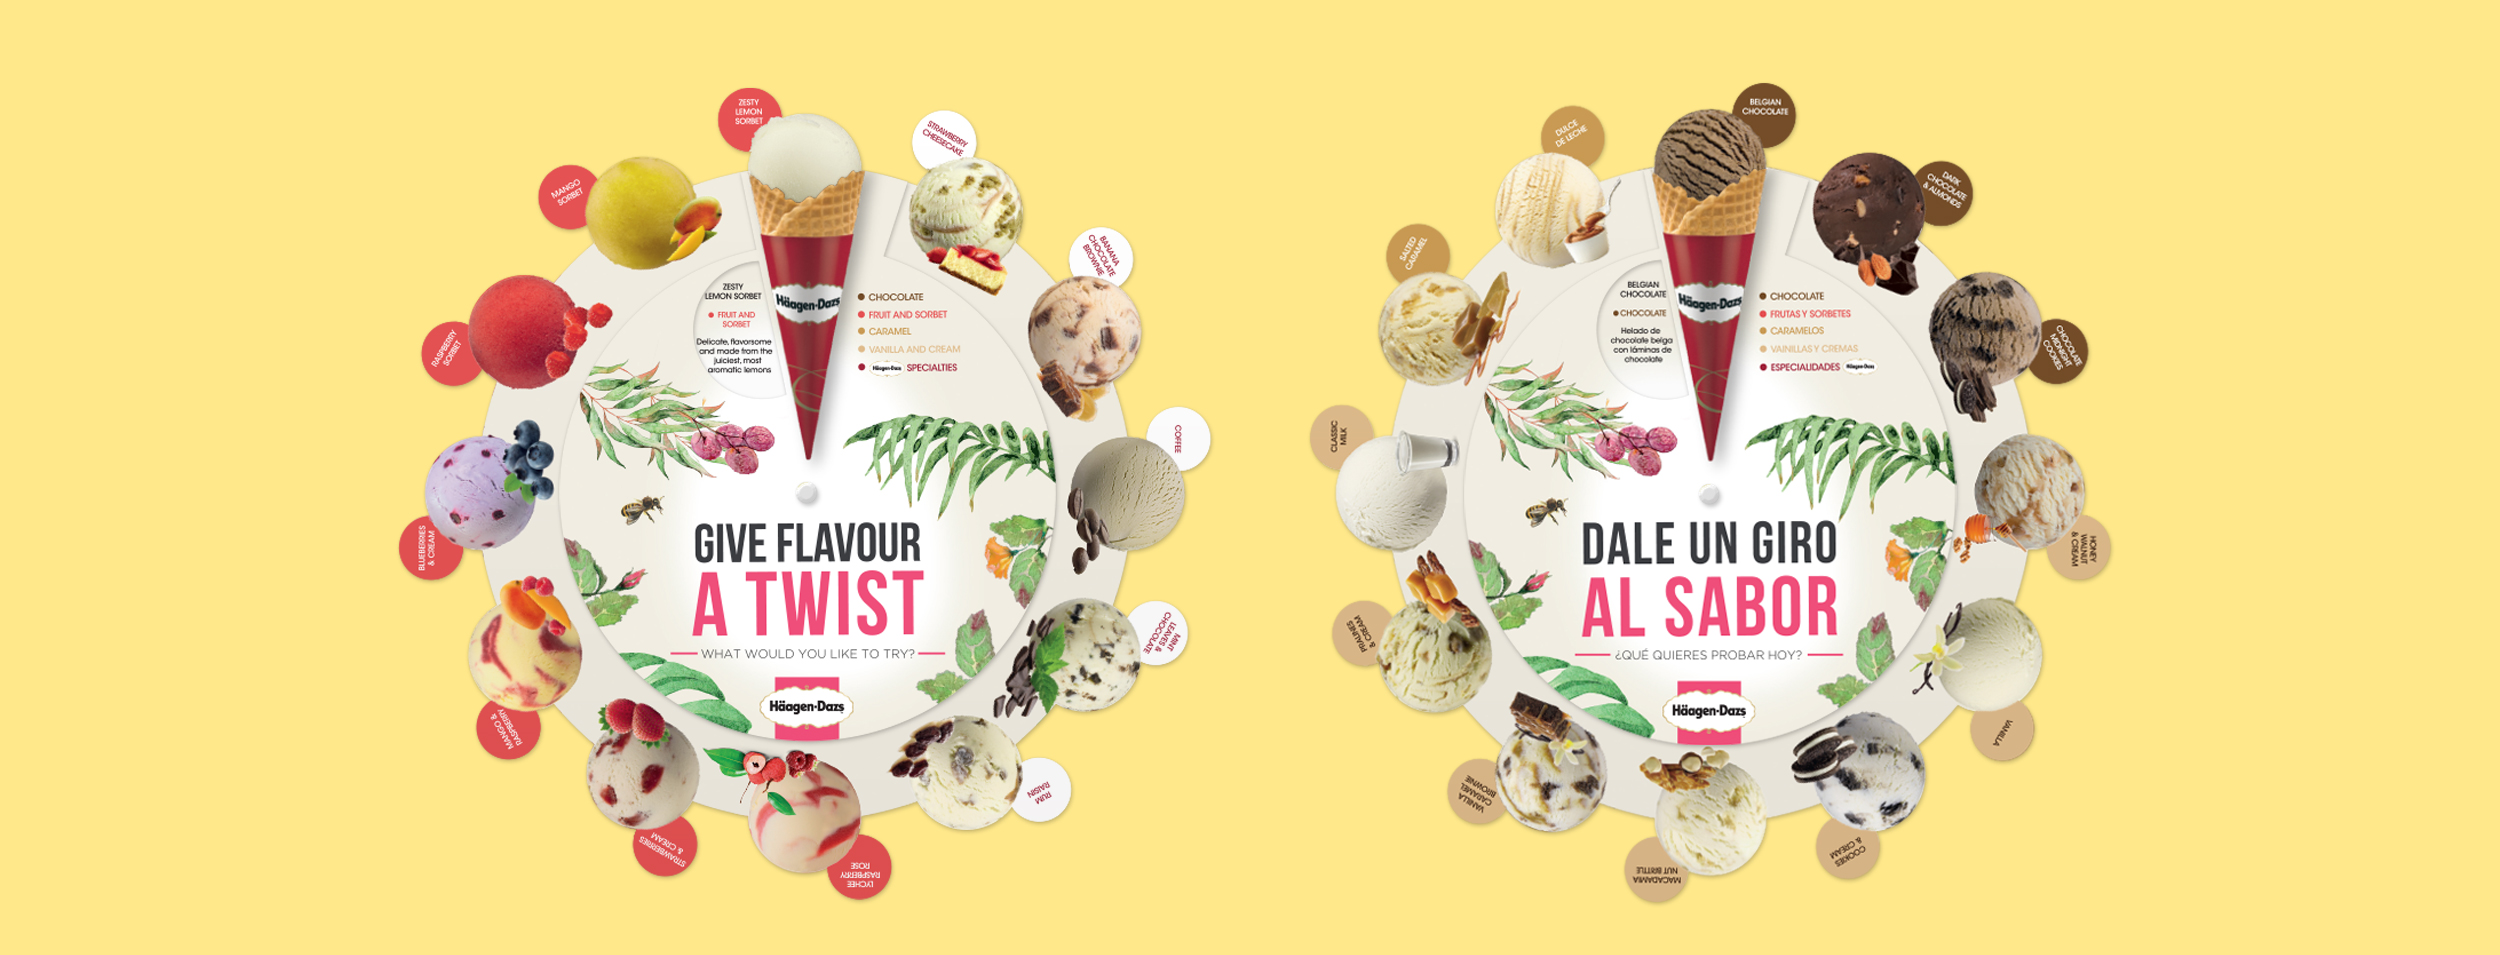 The image shows two versions (English and Spanish) of the pop-up menu produced for Häagen-Dazs. It consists of a central piece where the ice cream balls are shown and two pieces, on each side, with a cone.